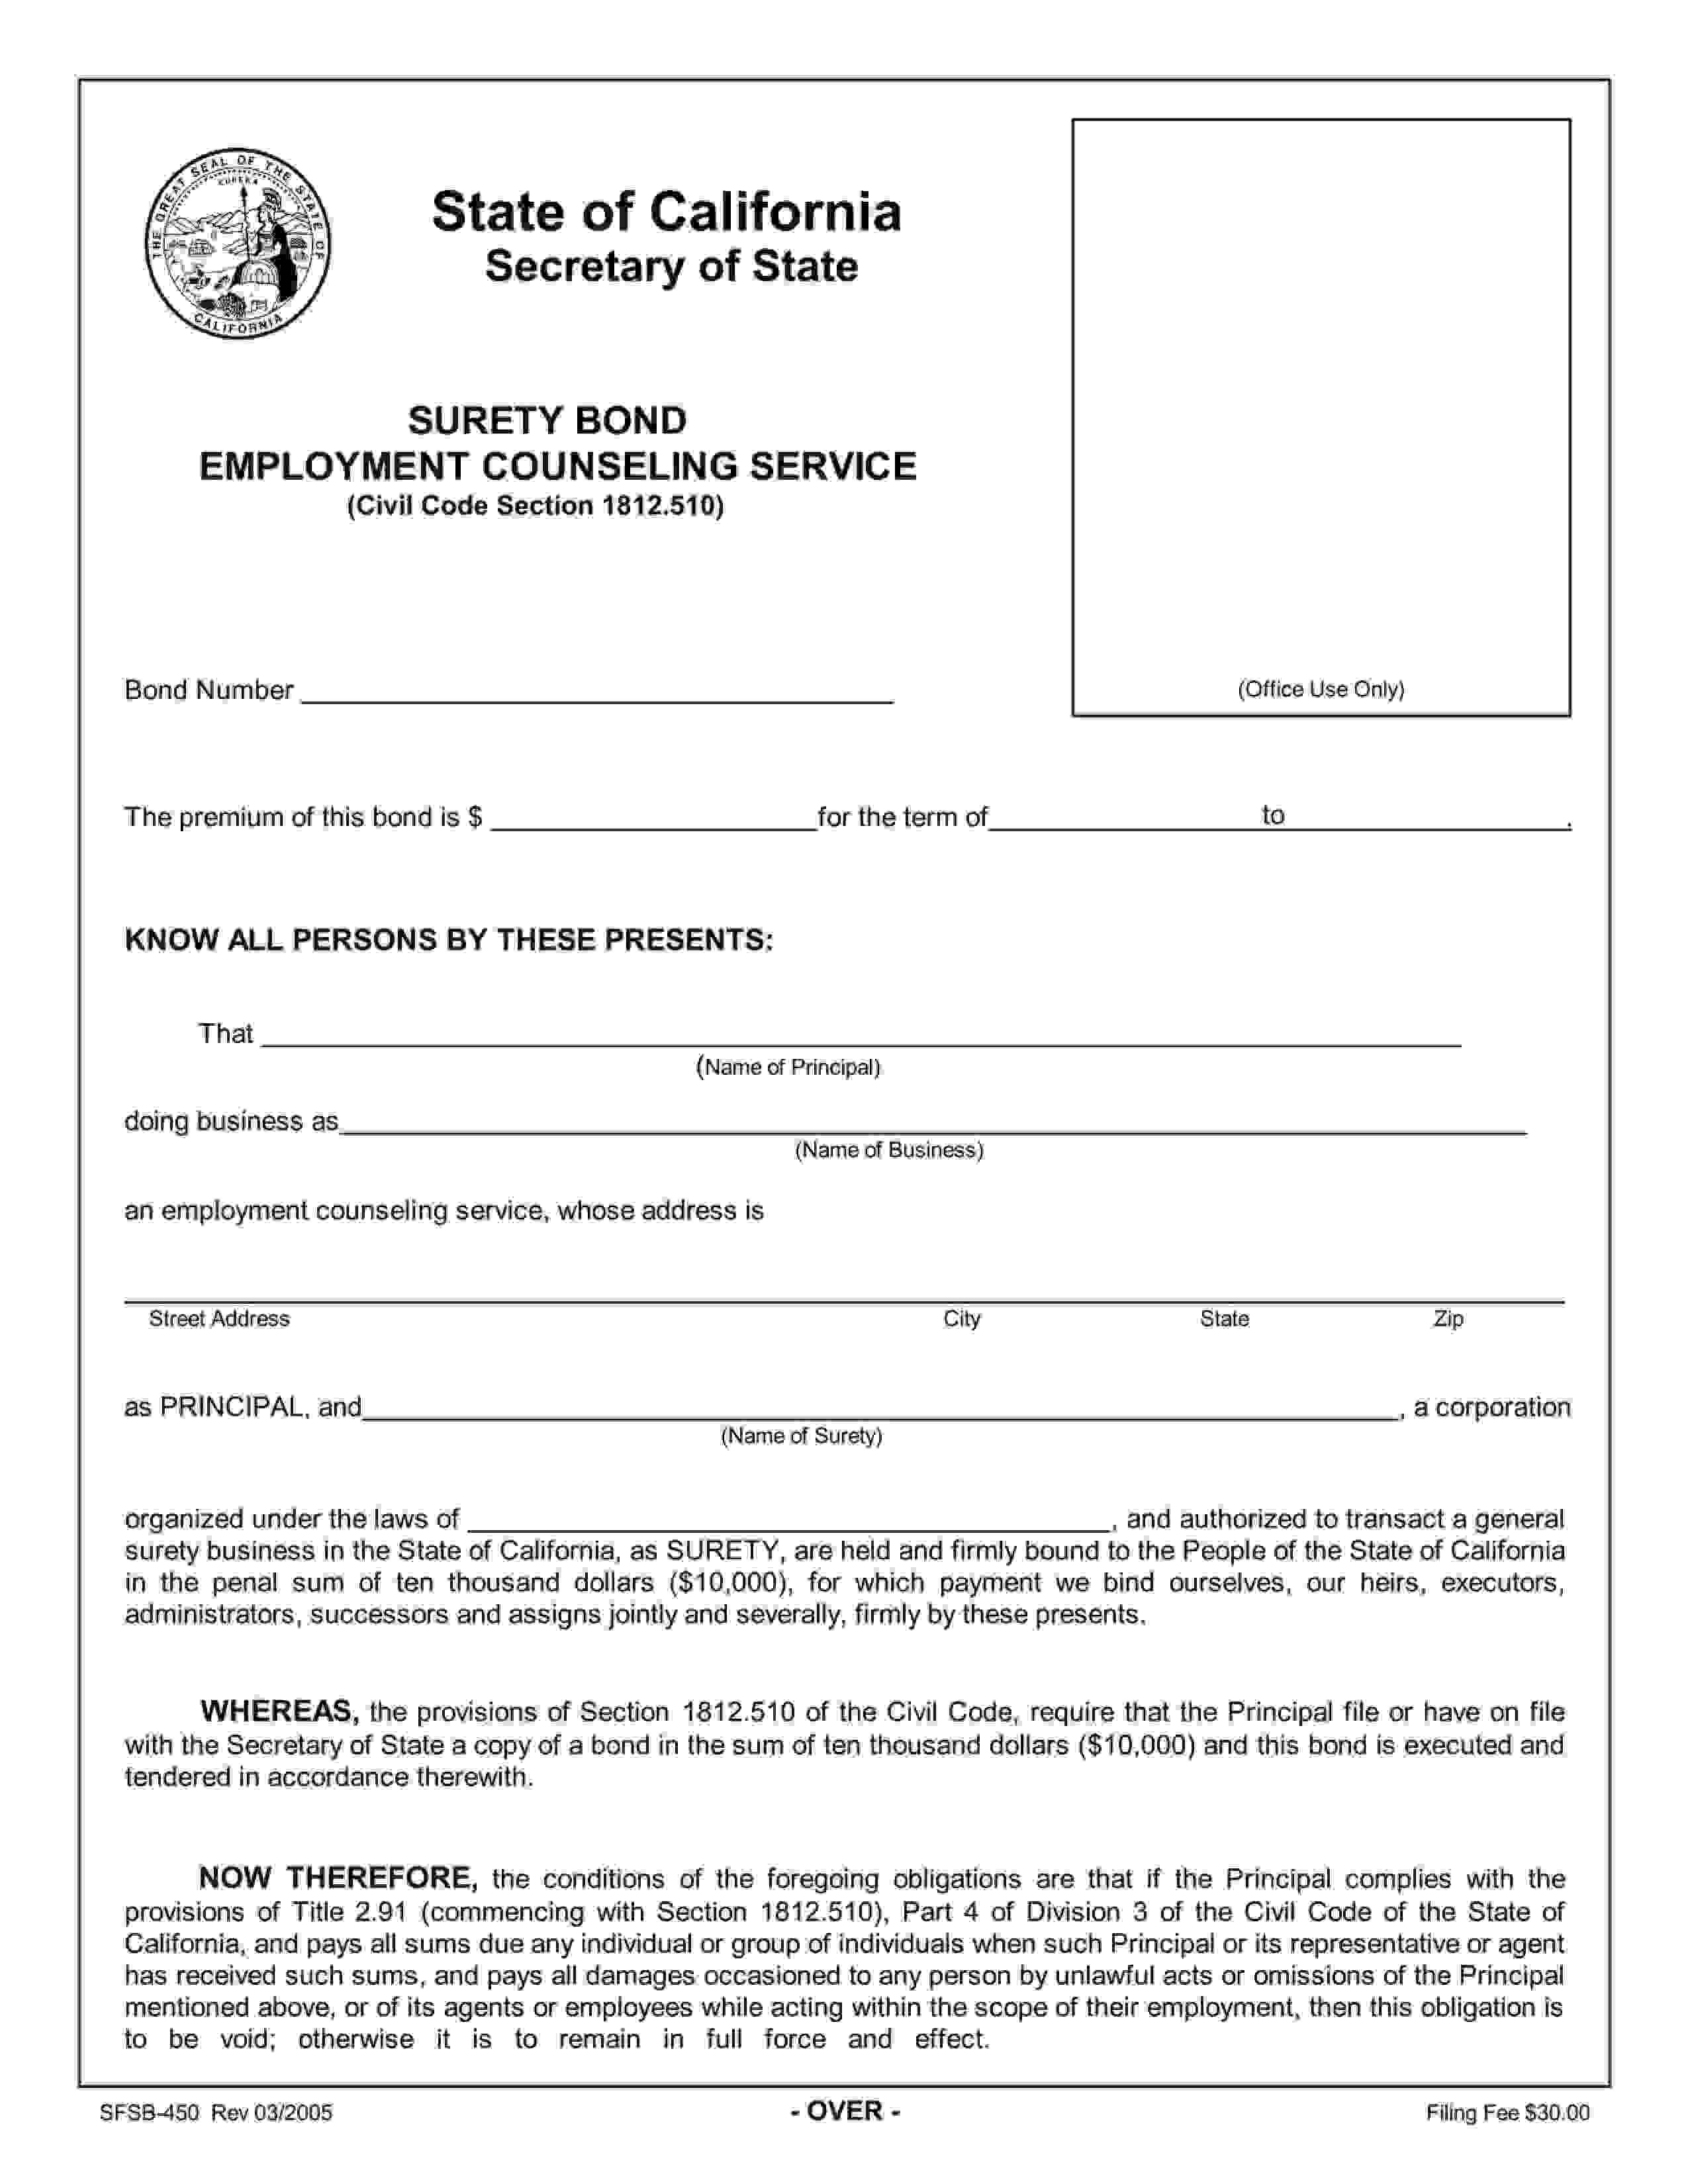 California Secretary of State Employment Counseling Service sample image